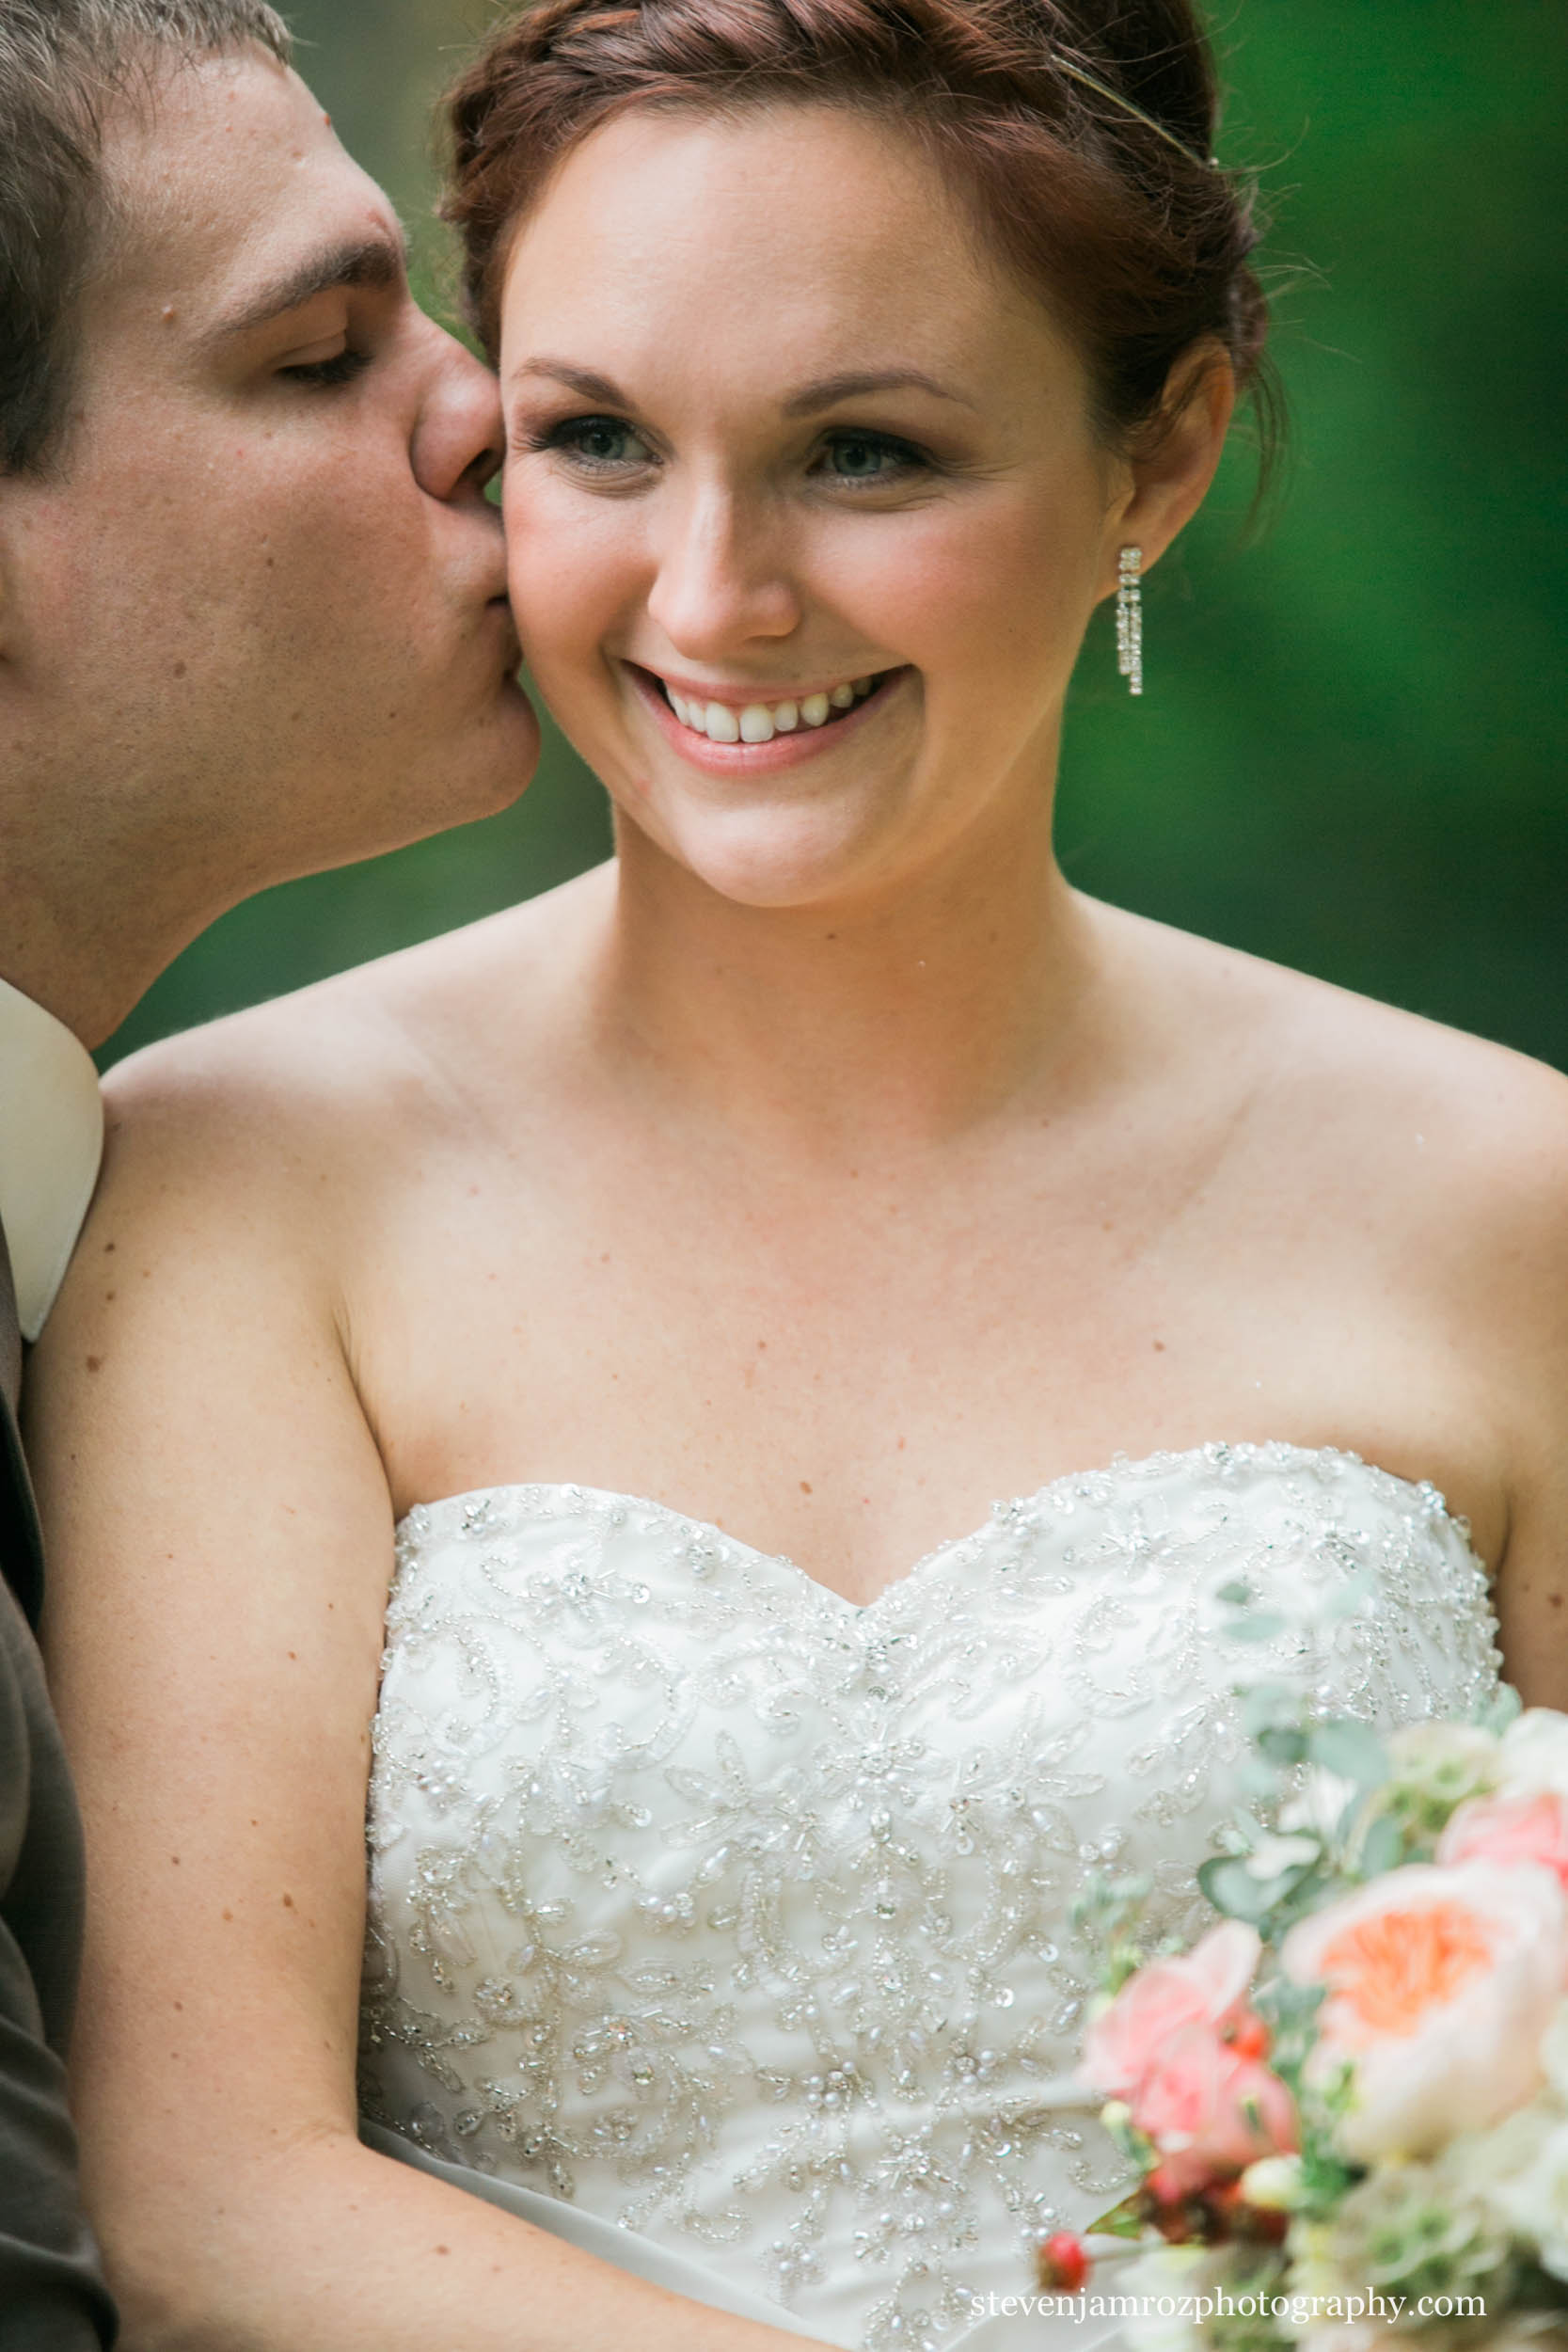 youngsville-nc-bride-groom-kiss-steven-jamroz-photography-0376.jpg